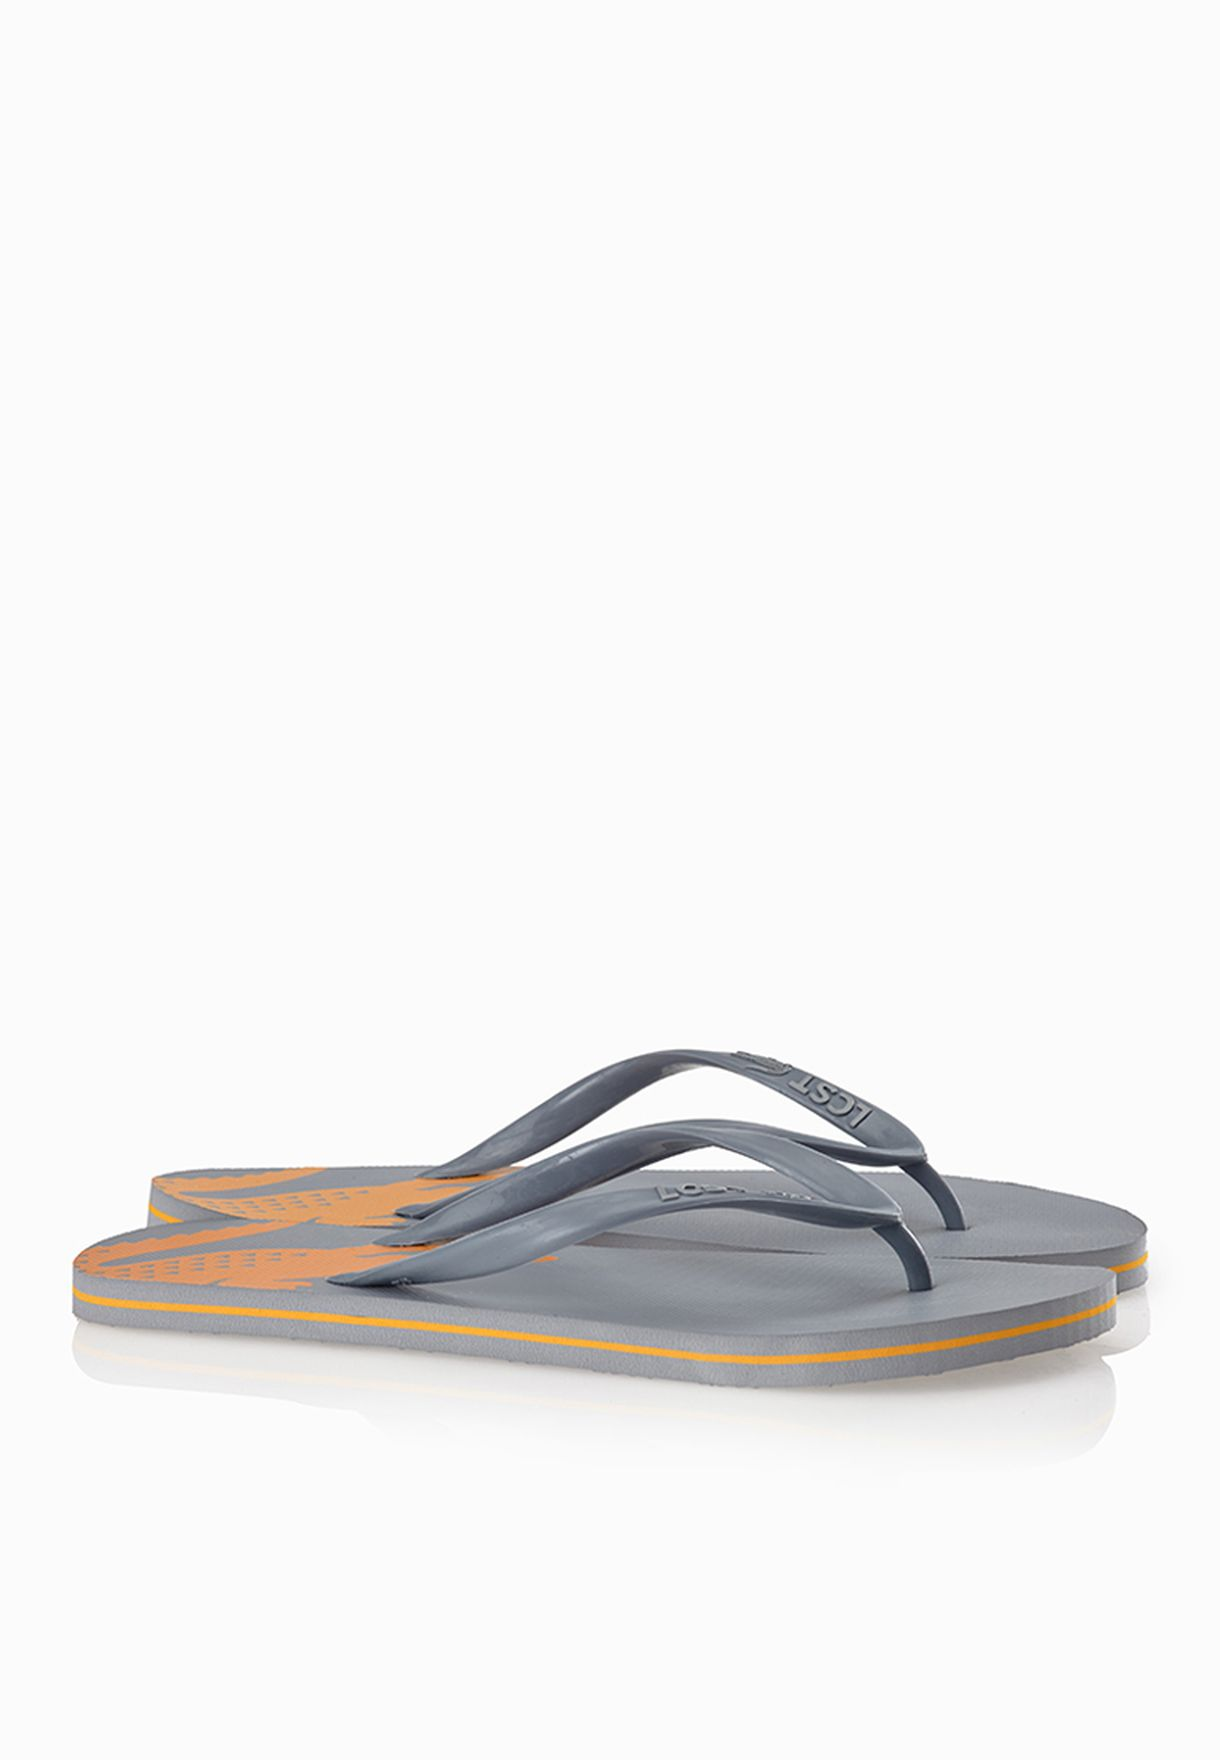 489cca7d1ce3 Shop Lacoste grey Frontflip CB Flip Flops 29SCM1118-S1M for Men in ...